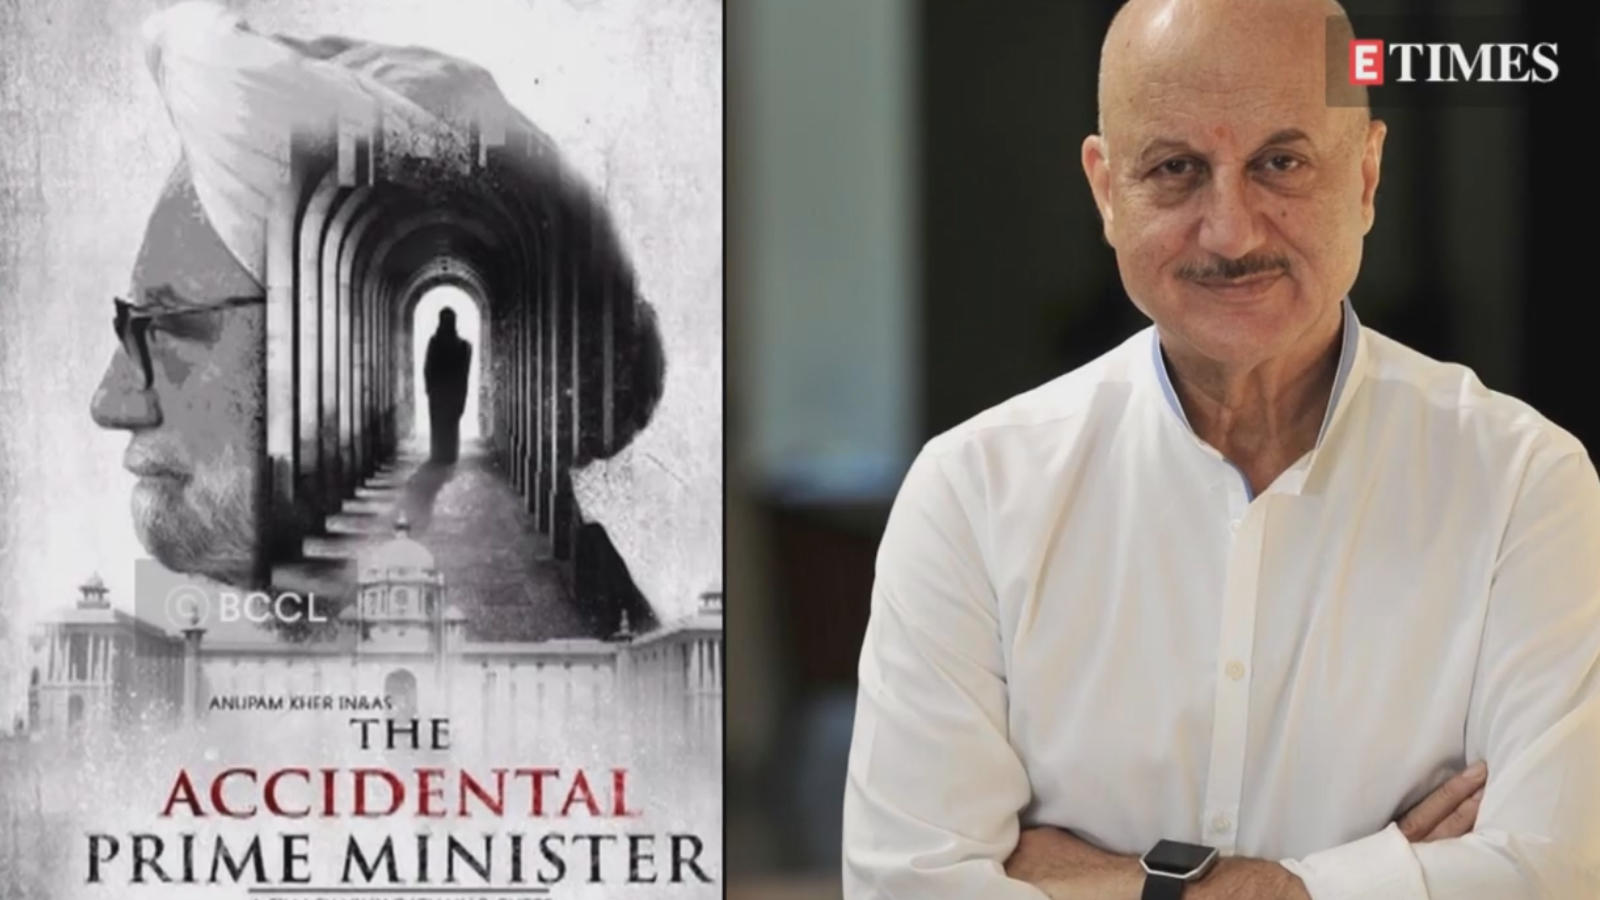 The Accidental Prime Minister: Trailer of the Anupam Kher-starrer goes missing on YouTube